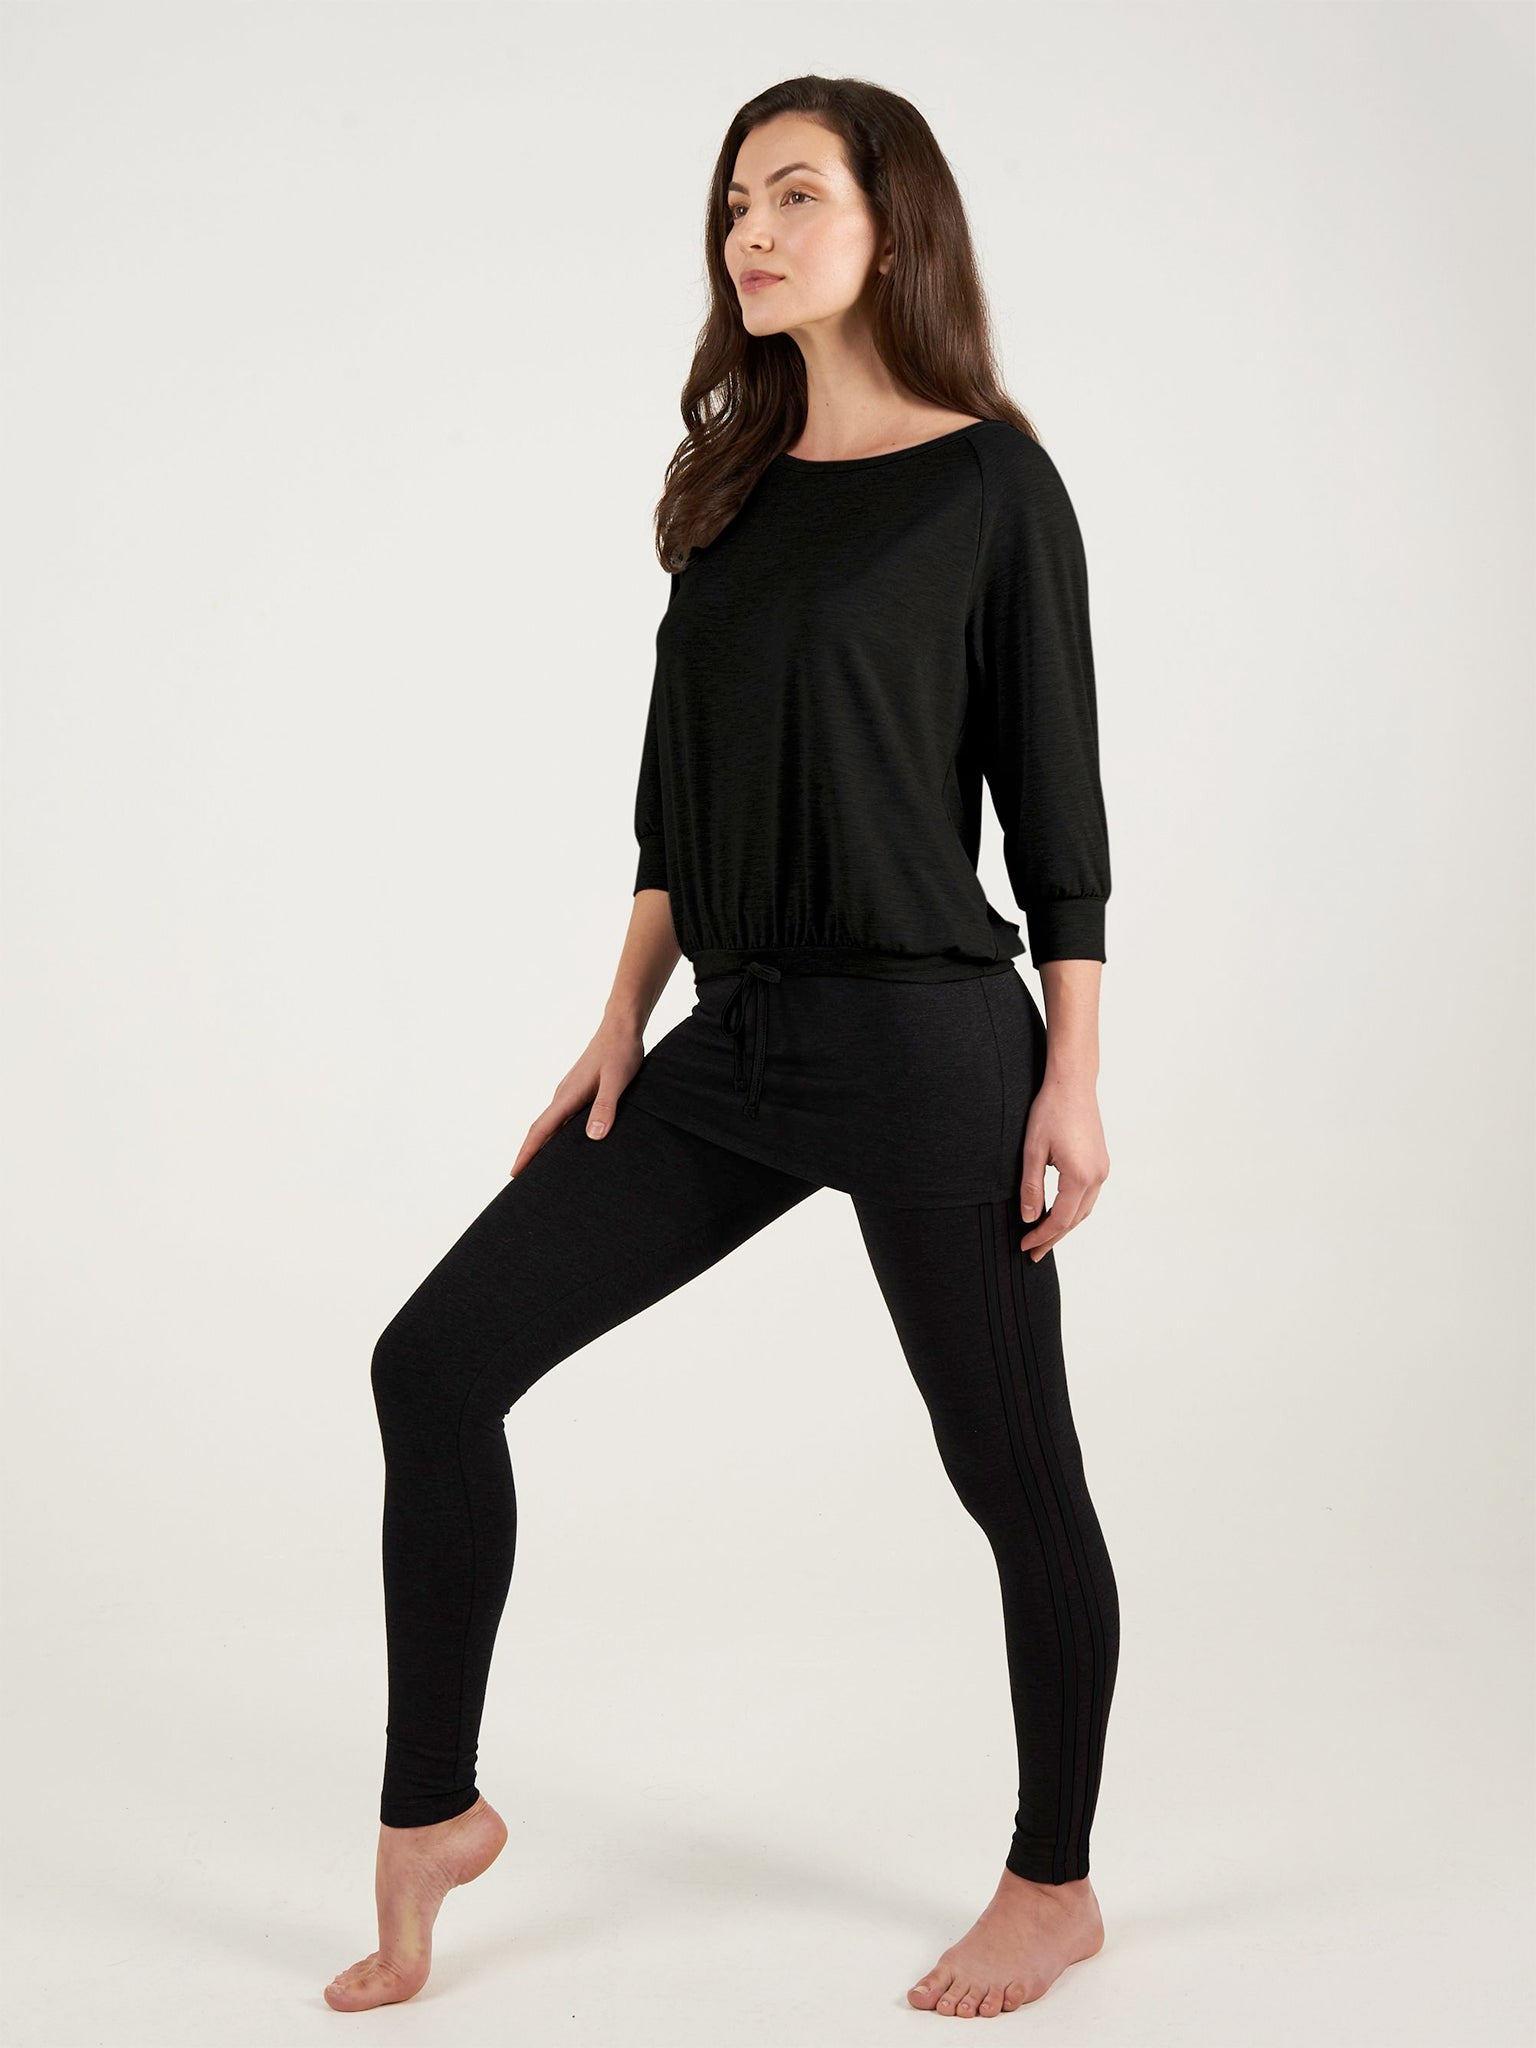 Asquith Smooth You Leggings - Black